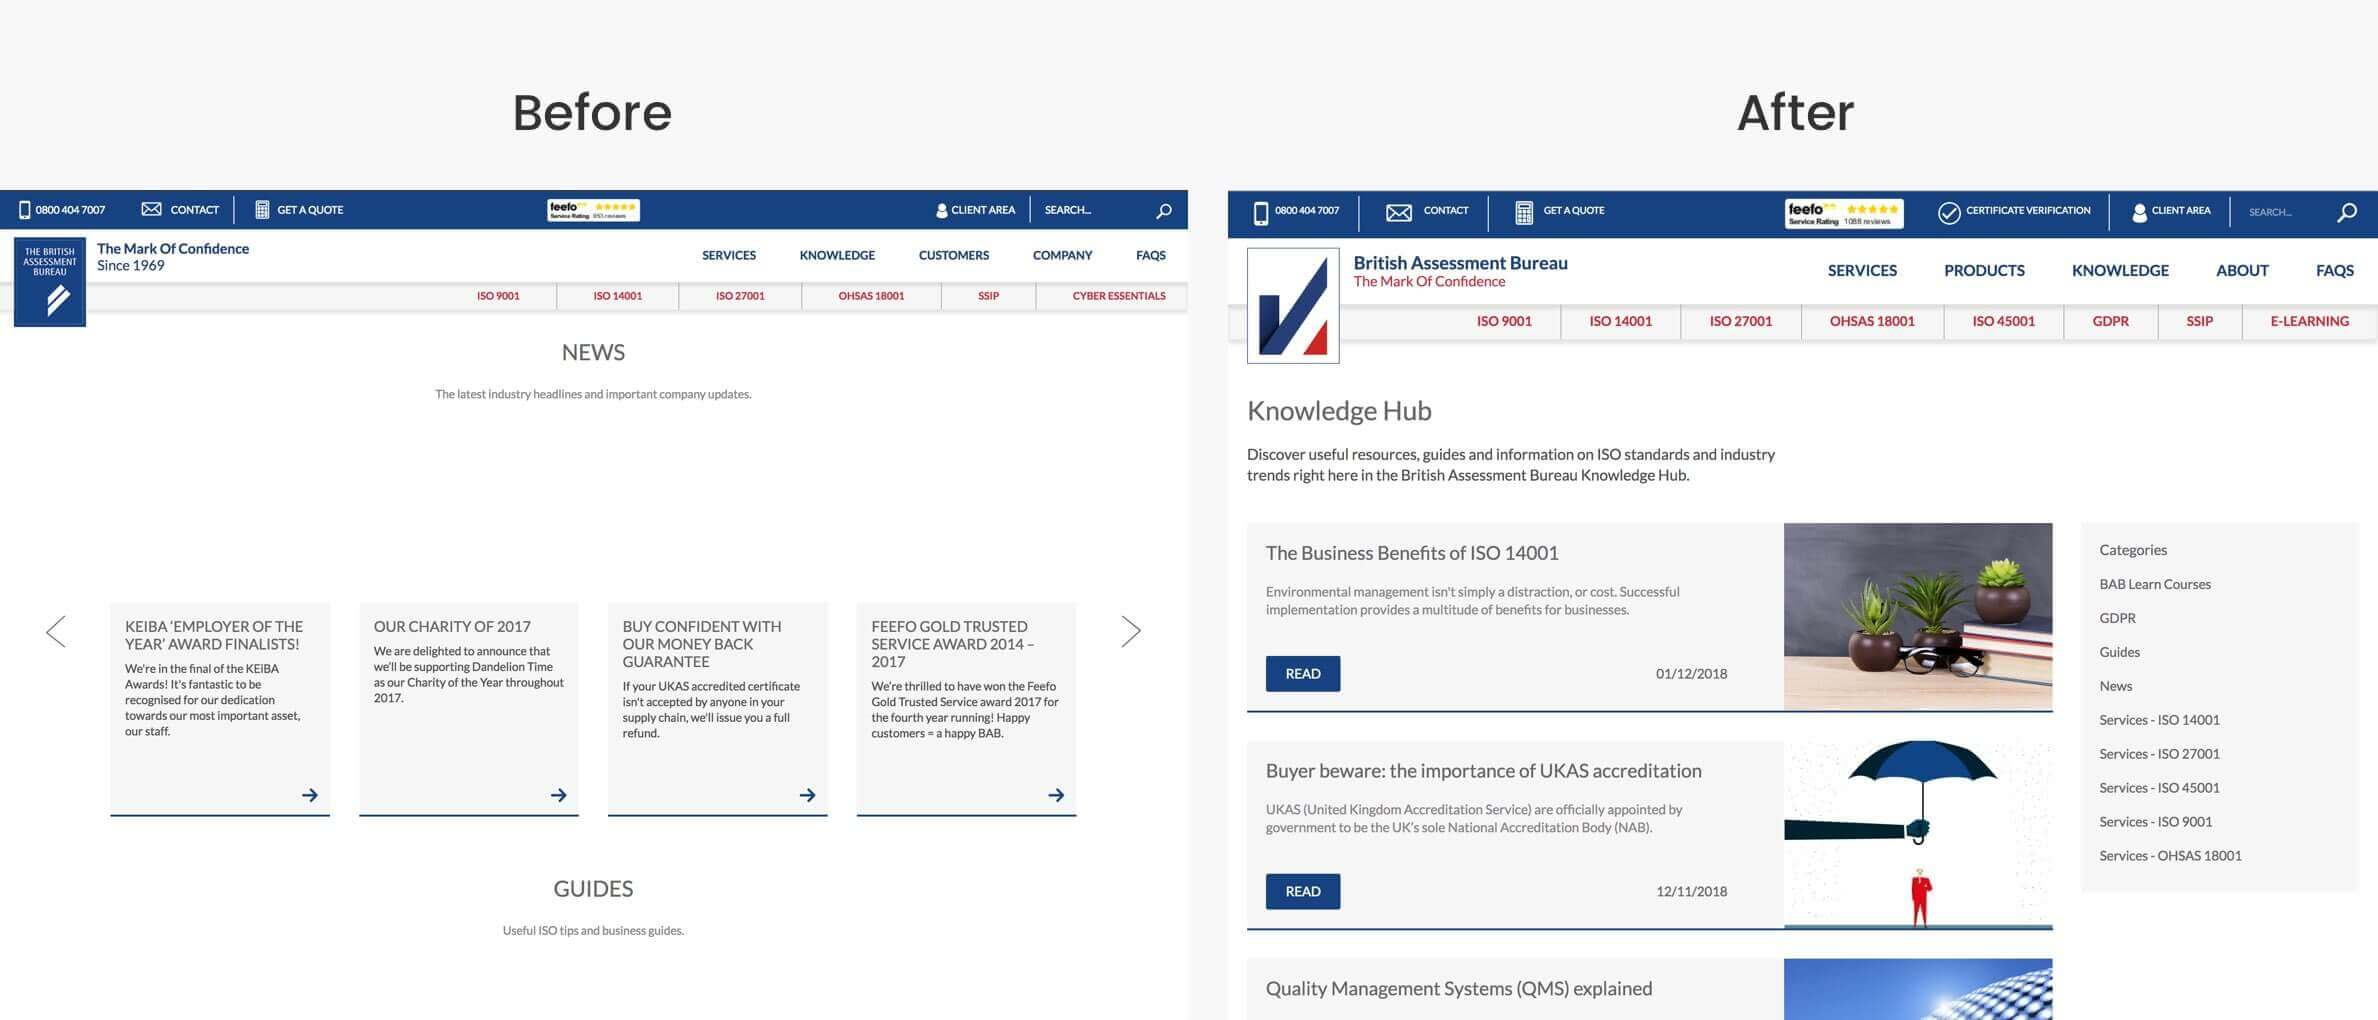 Comparison of our new knowledge hub website design compared to the old site